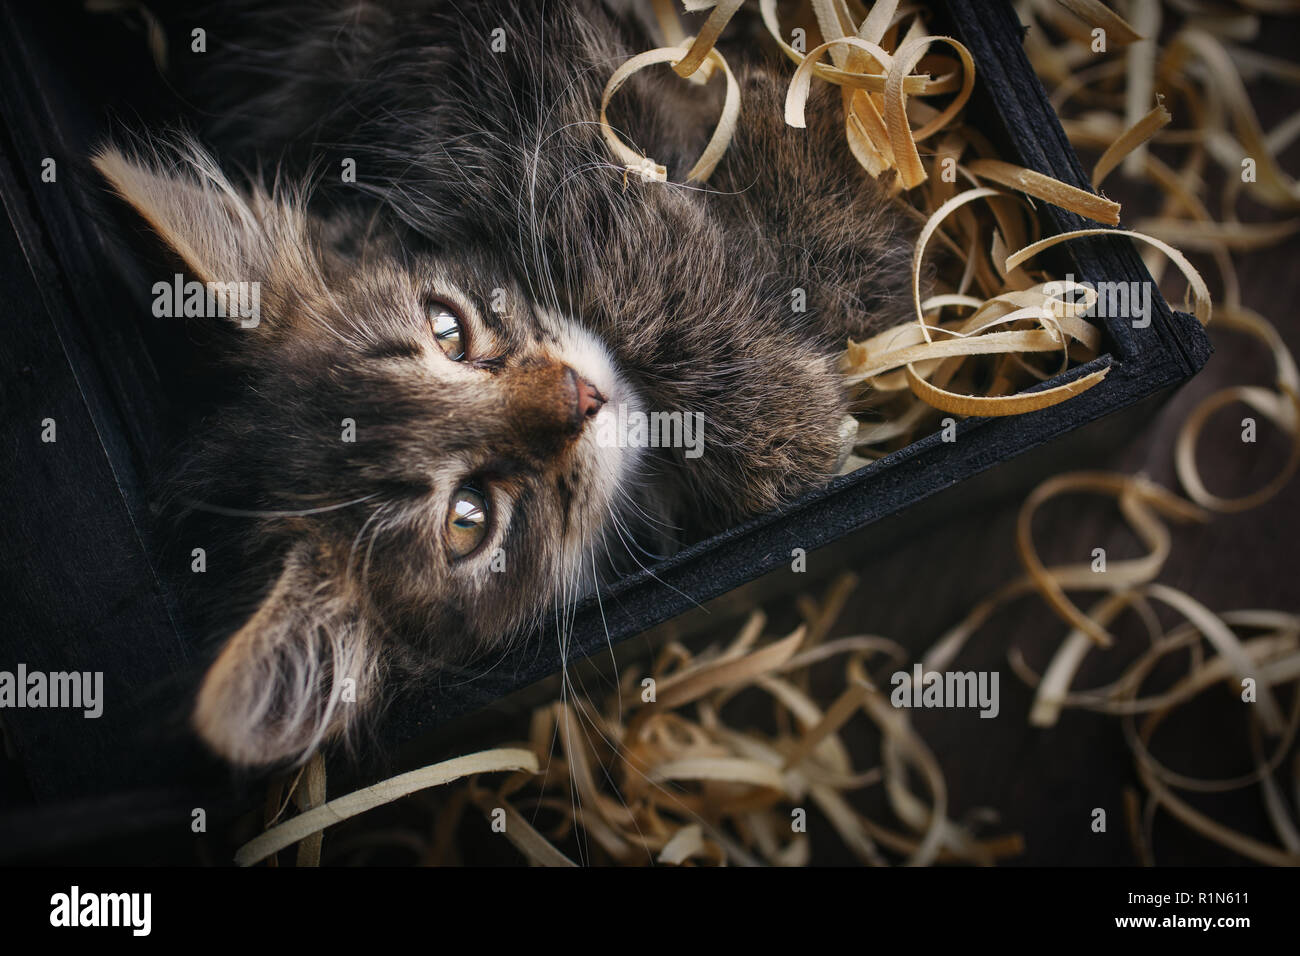 Cat lying in sawdust. Funny gray kitty - Stock Image